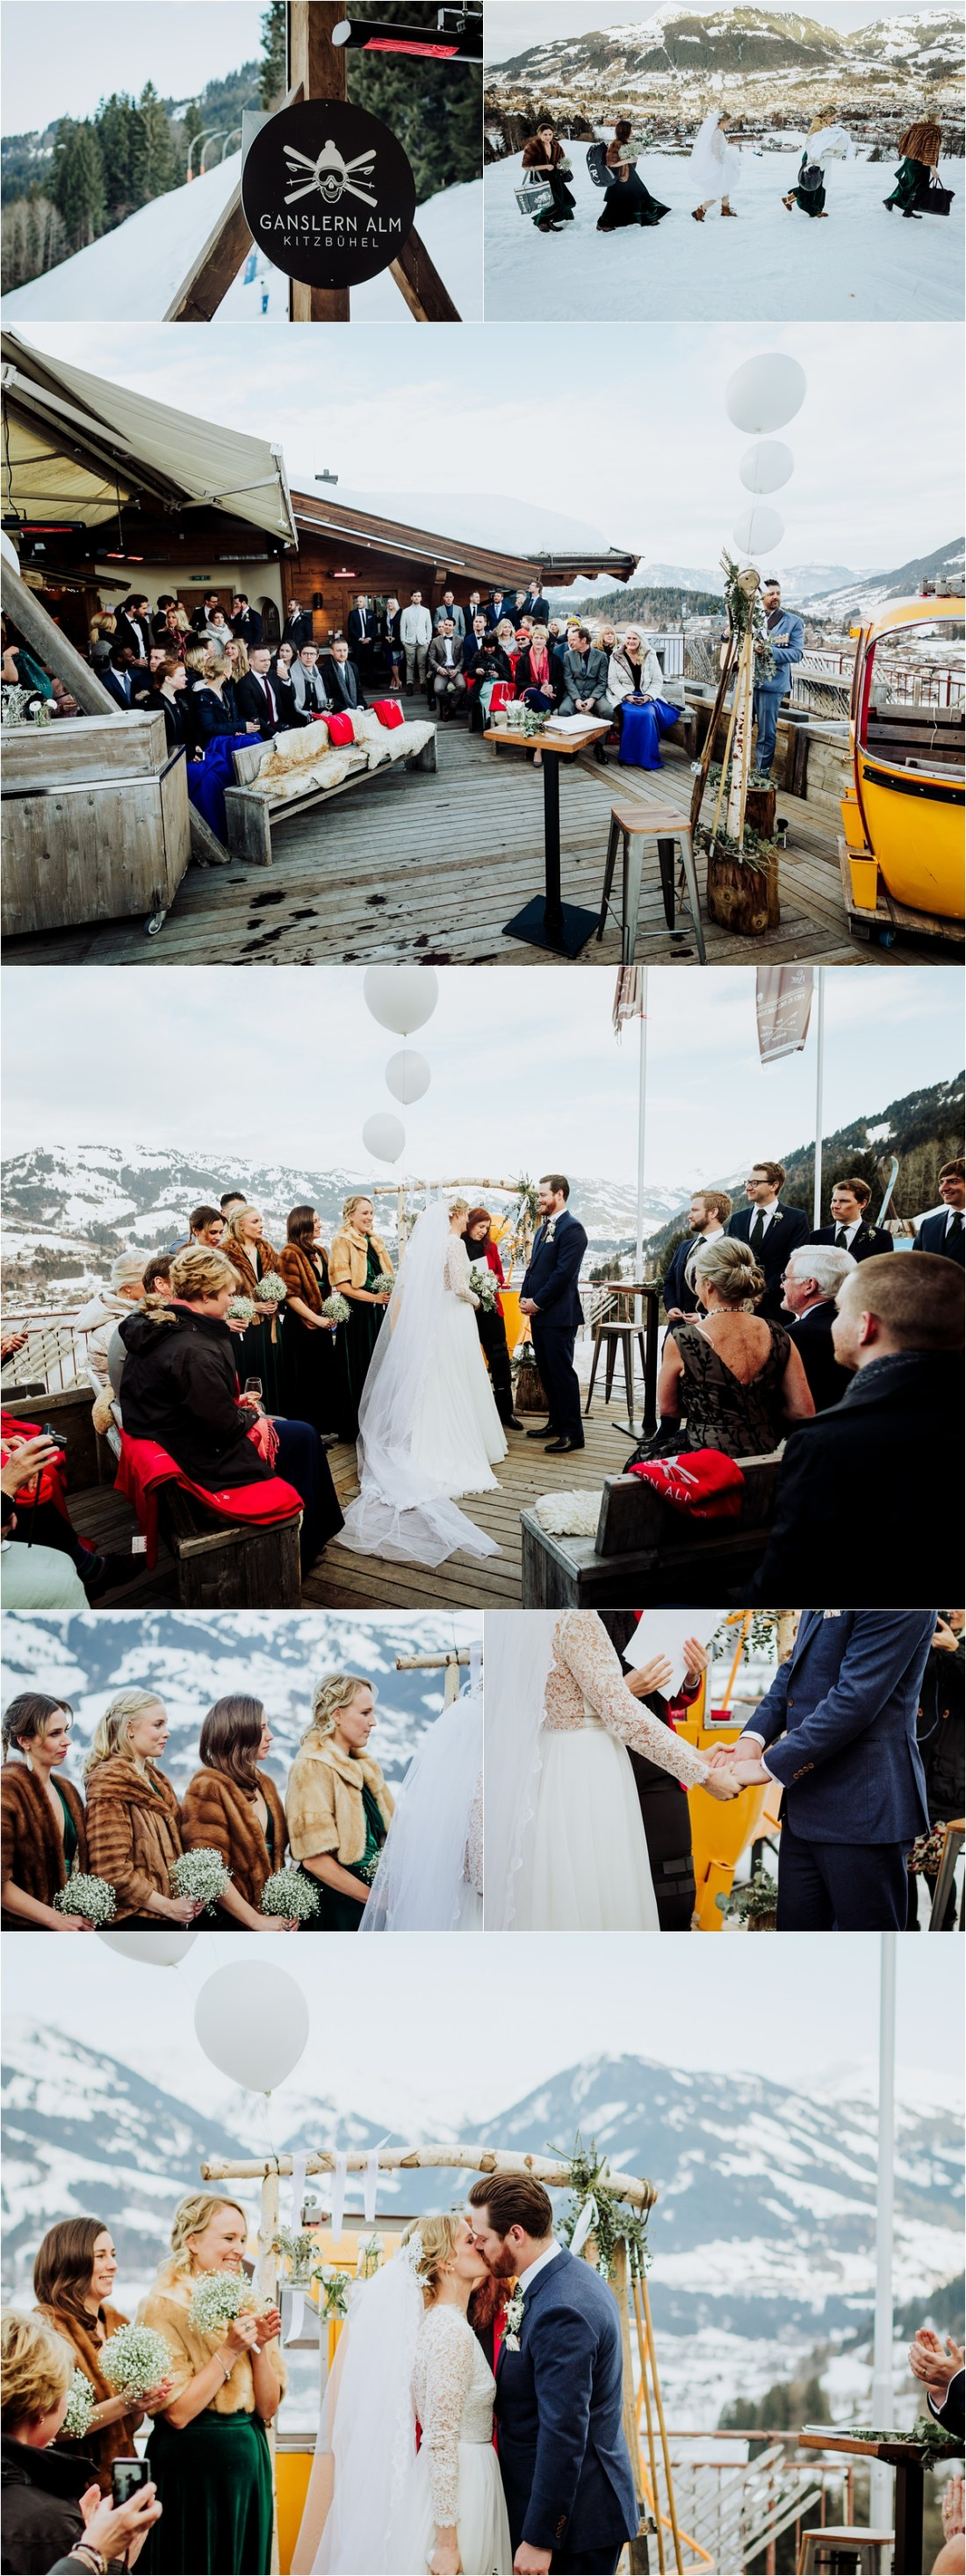 A winter wedding ceremony at the Ganslern Alm in Kitzbühel by Wild Connections Photography